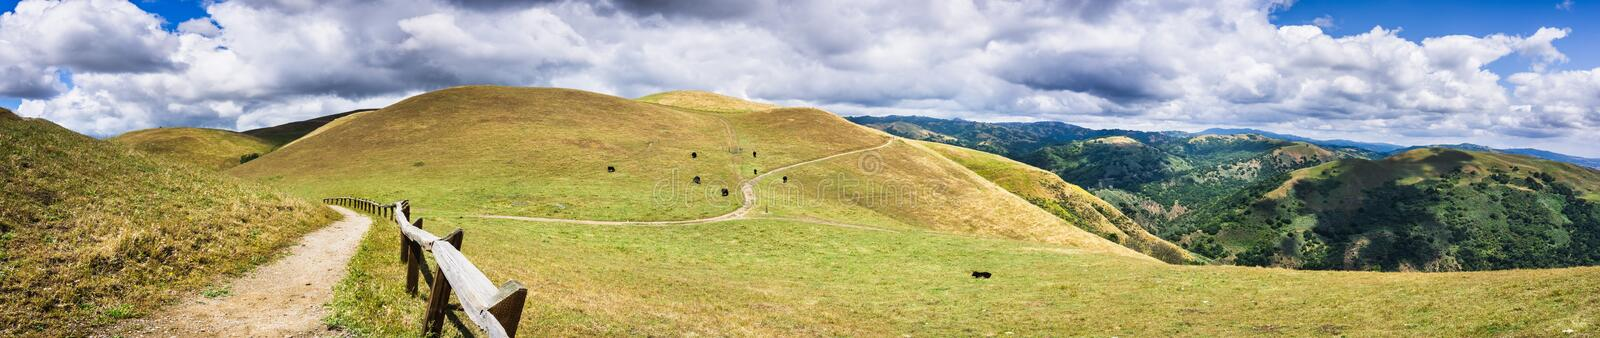 Hiking trail through the hills of south San Francisco bay area; cattle grazing on the hillsides; San Jose, California royalty free stock photos